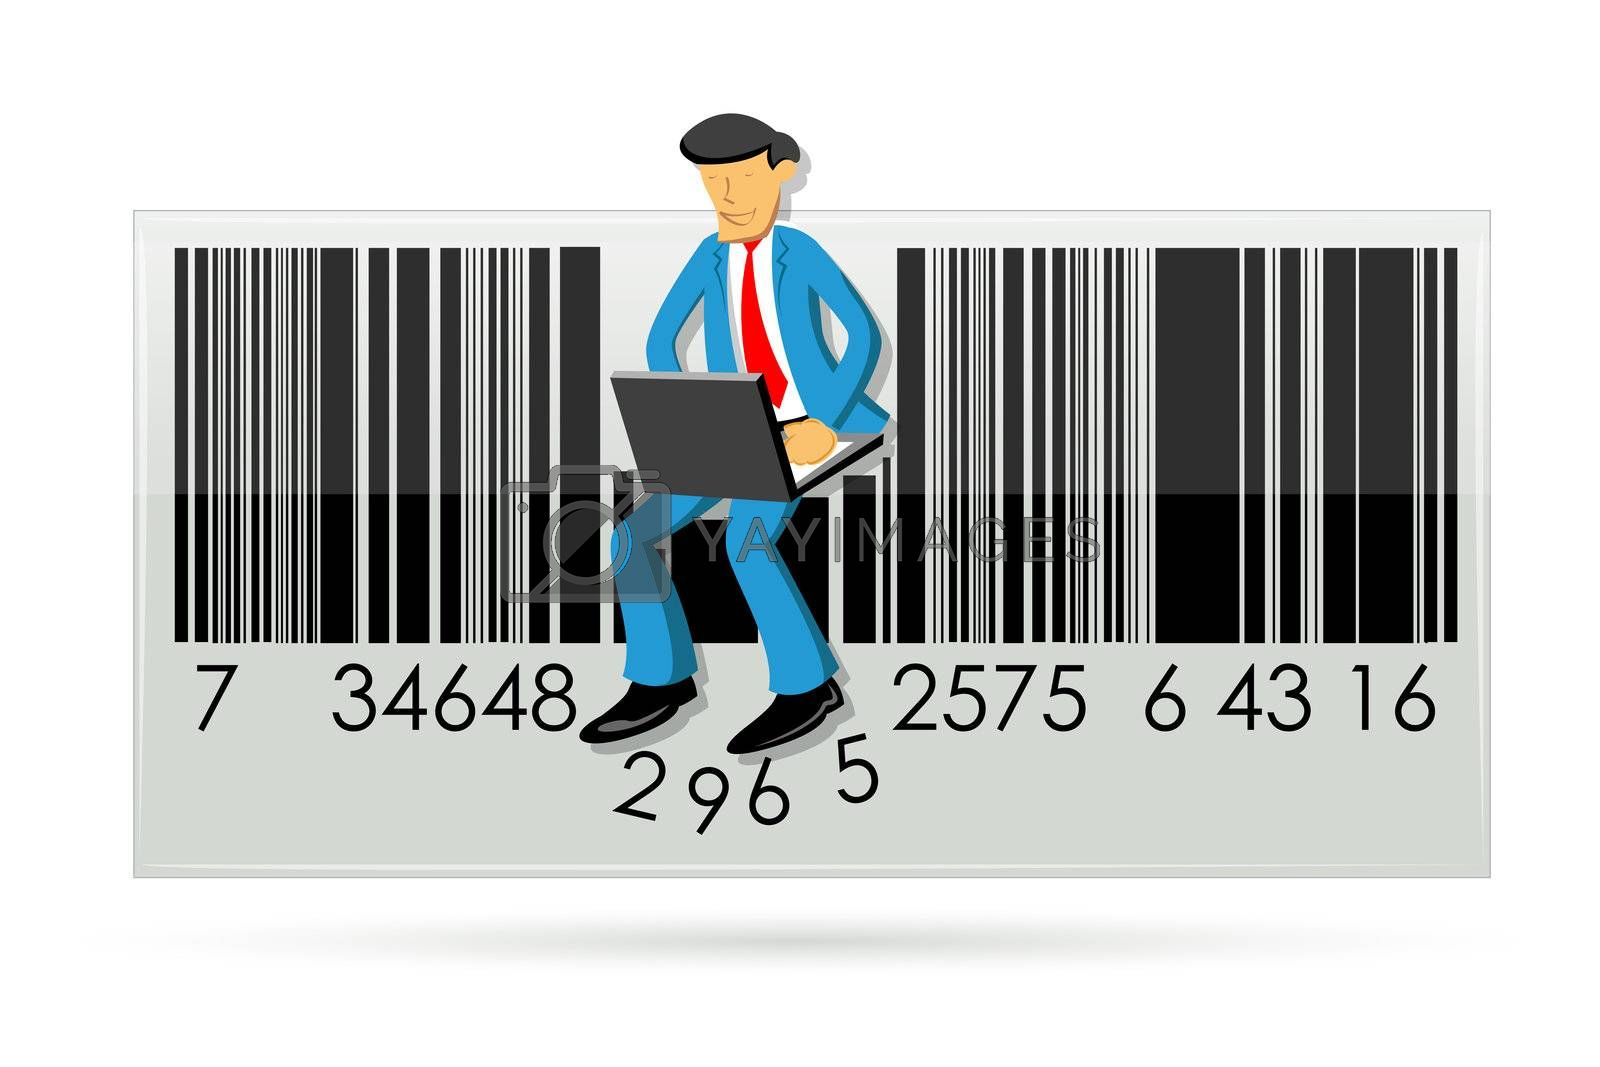 illustration of businessman with laptop in barcode on white background